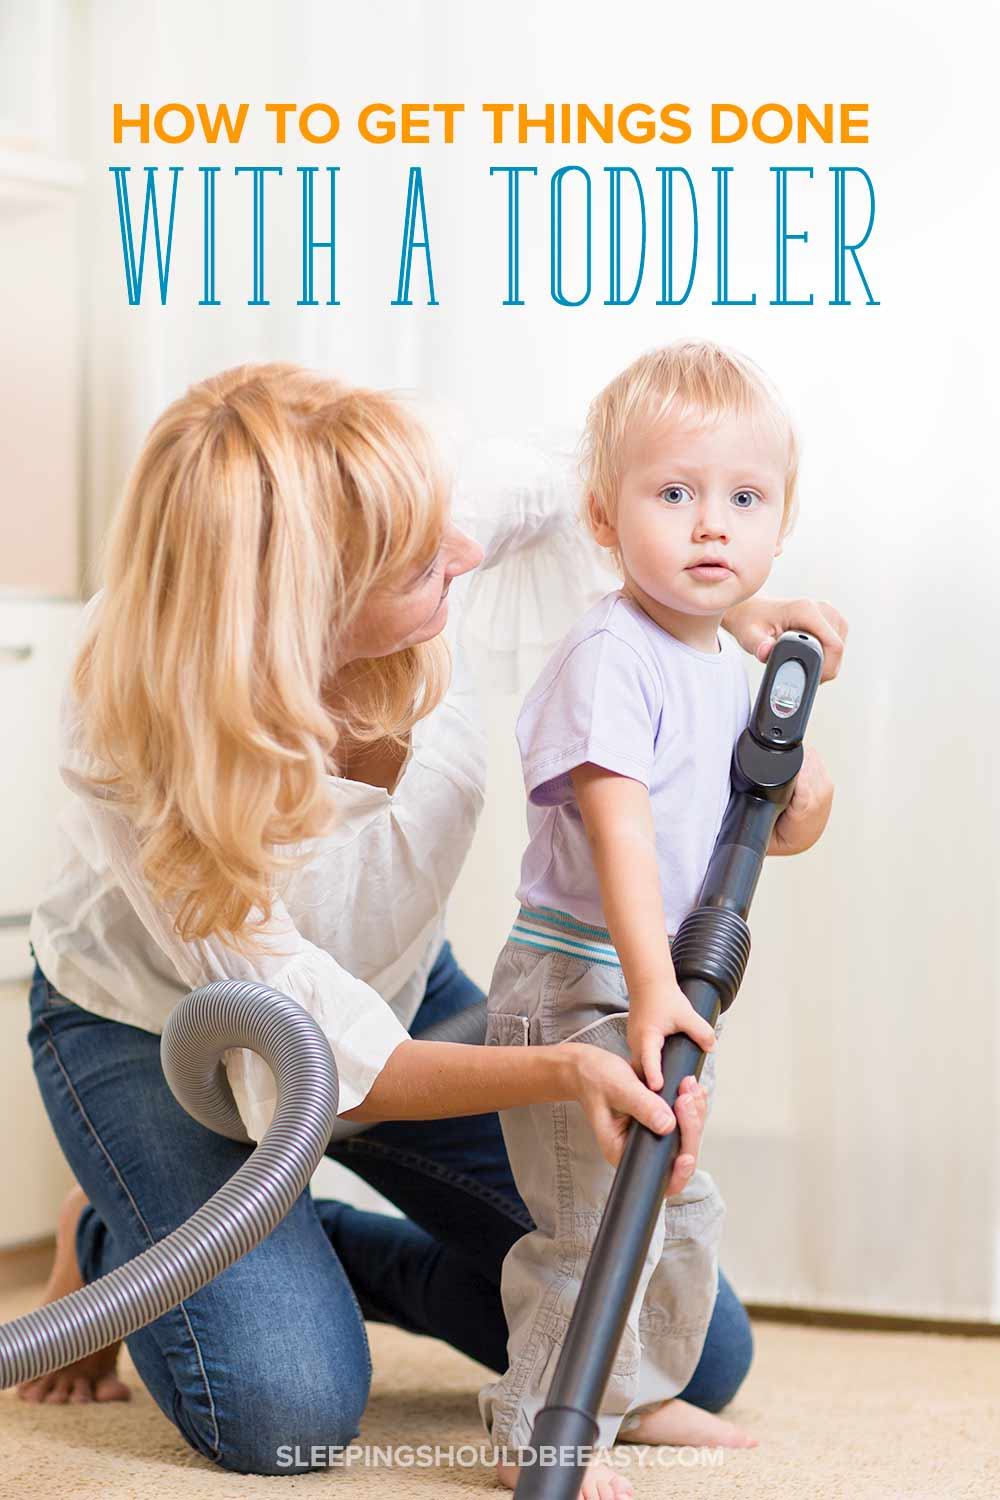 Mom showing her toddler how to hold the vacuum